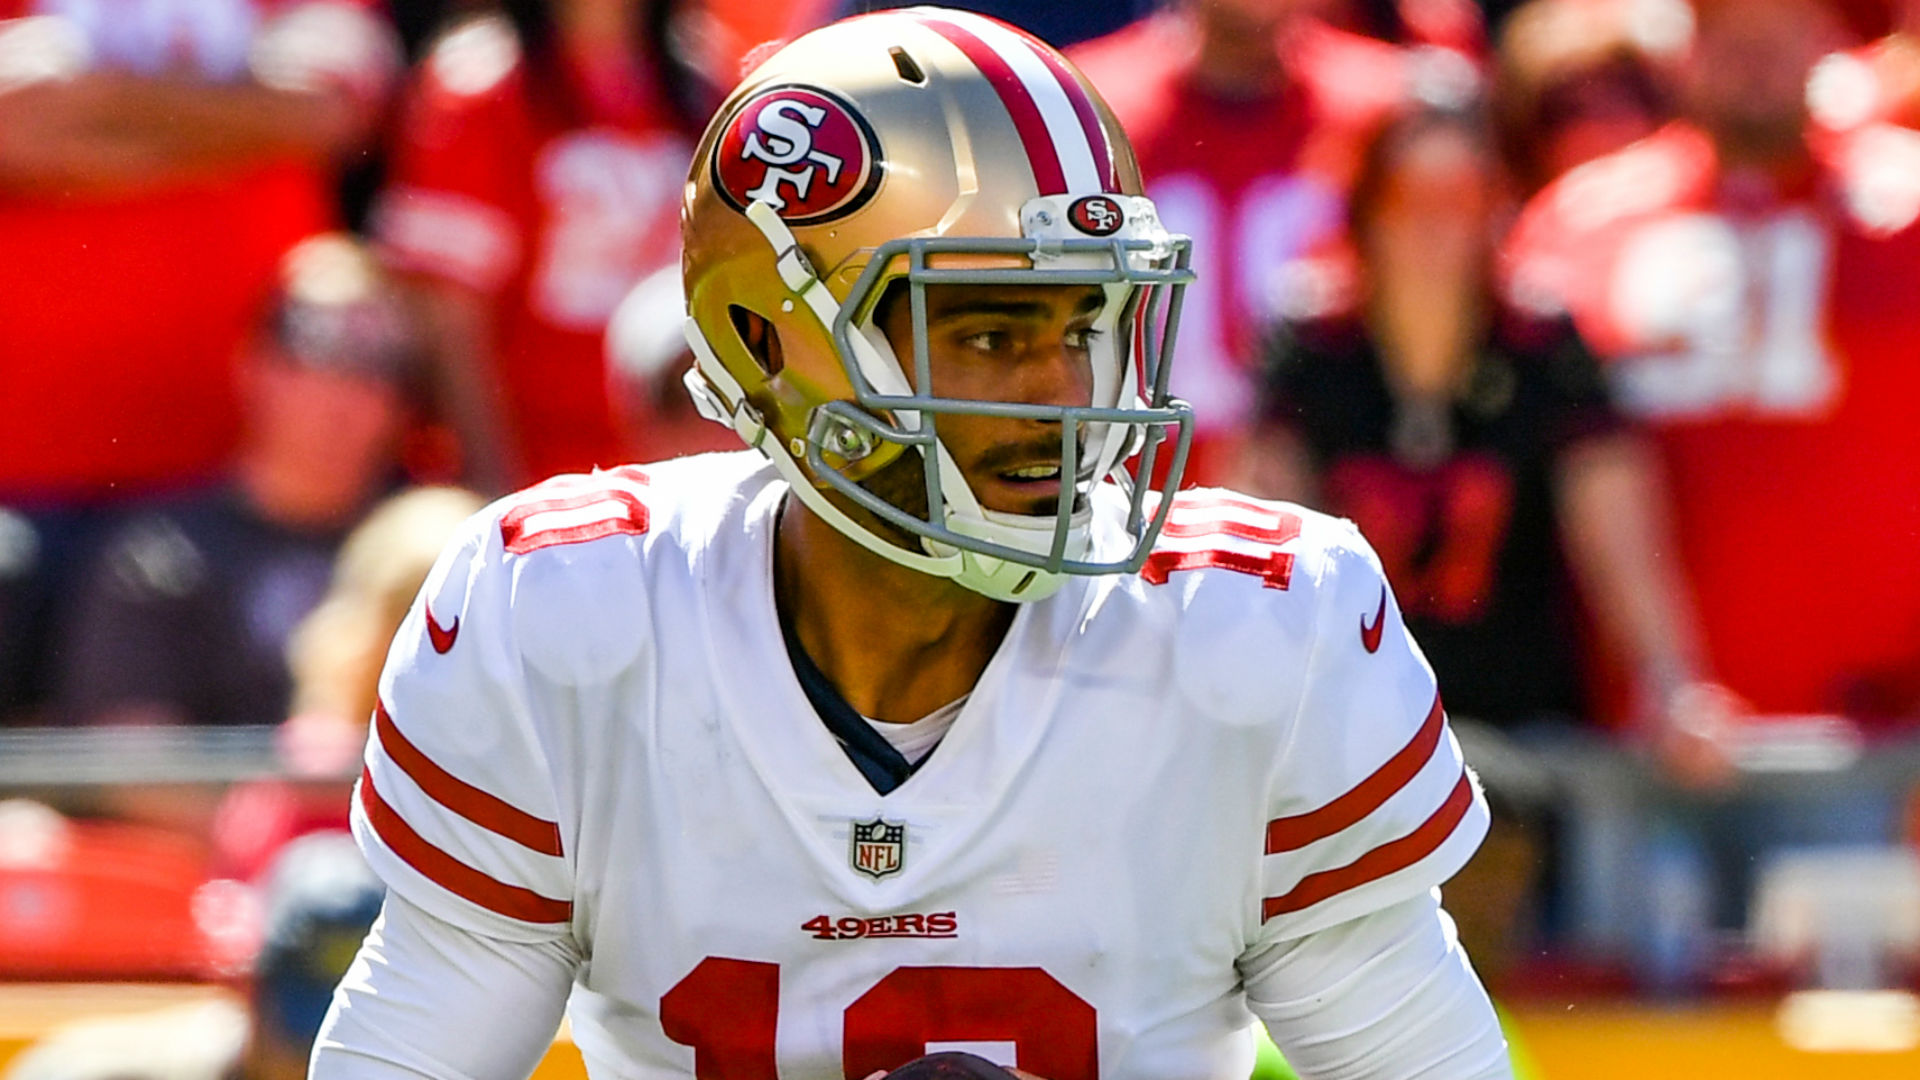 49ers' Jimmy Garoppolo shows improvement after poor preseason debut